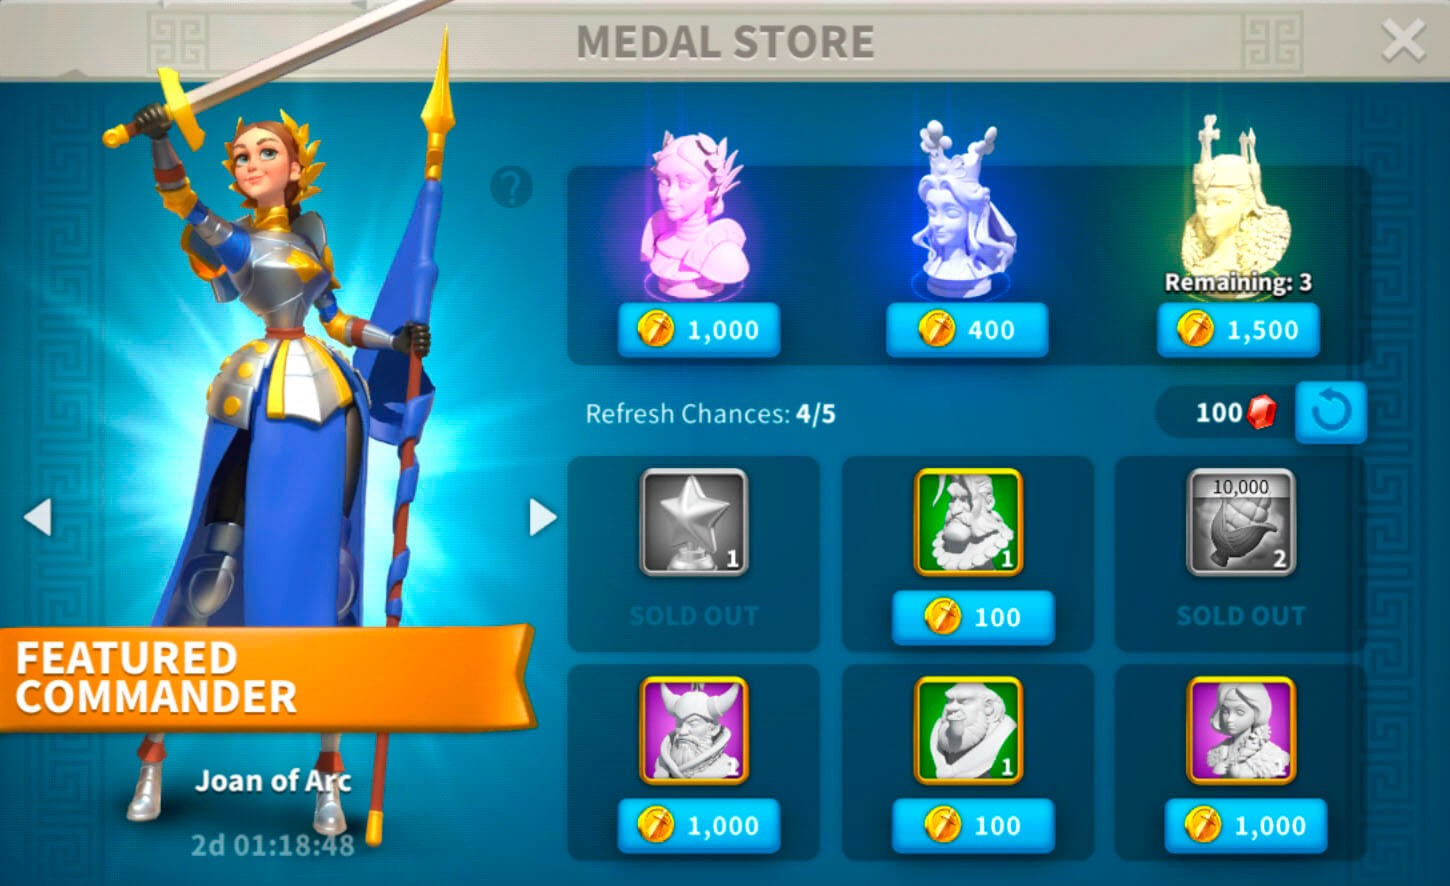 medal store expedition